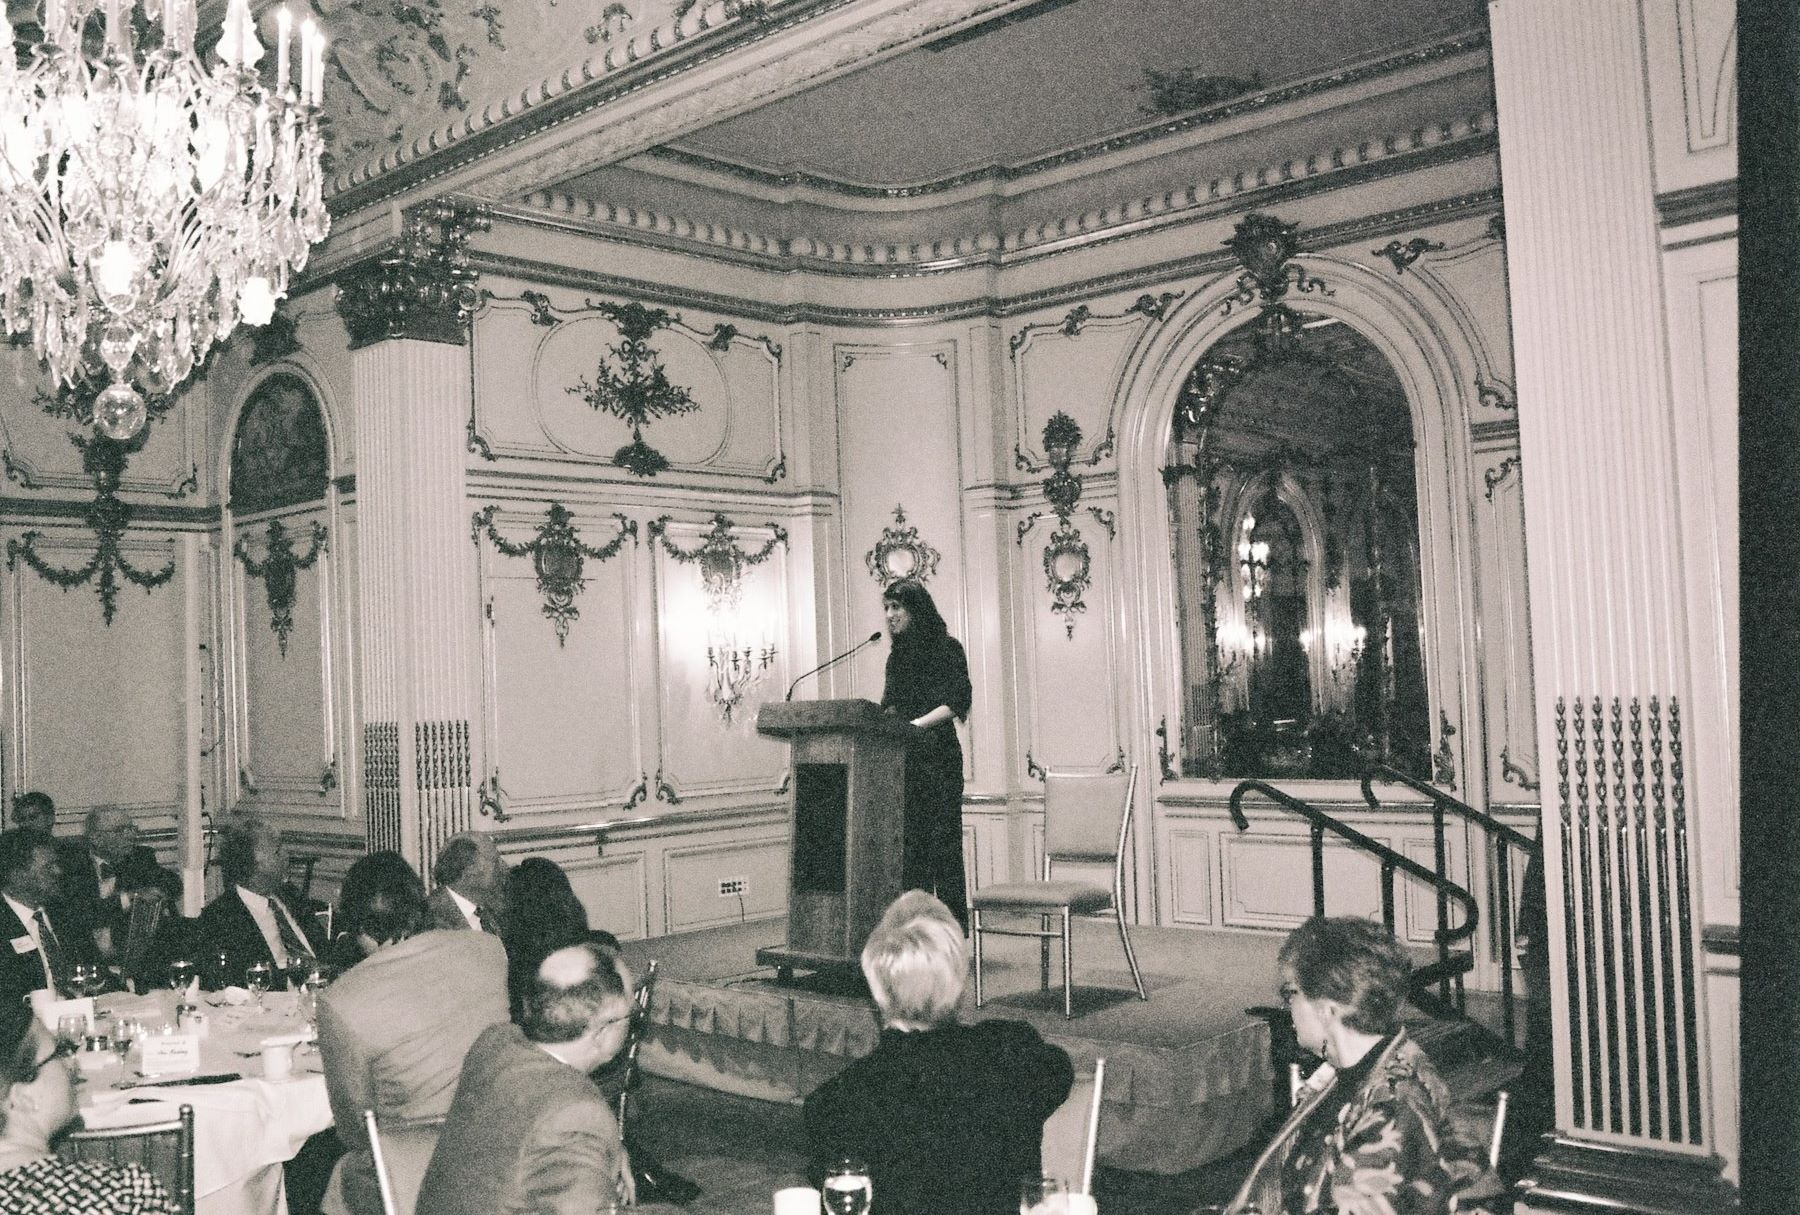 Speaking at the Cosmos Club in Washington, D.C. after having won an award to conduct Post-Soviet Graffiti research in Russia during the 2012 Presidential Election.